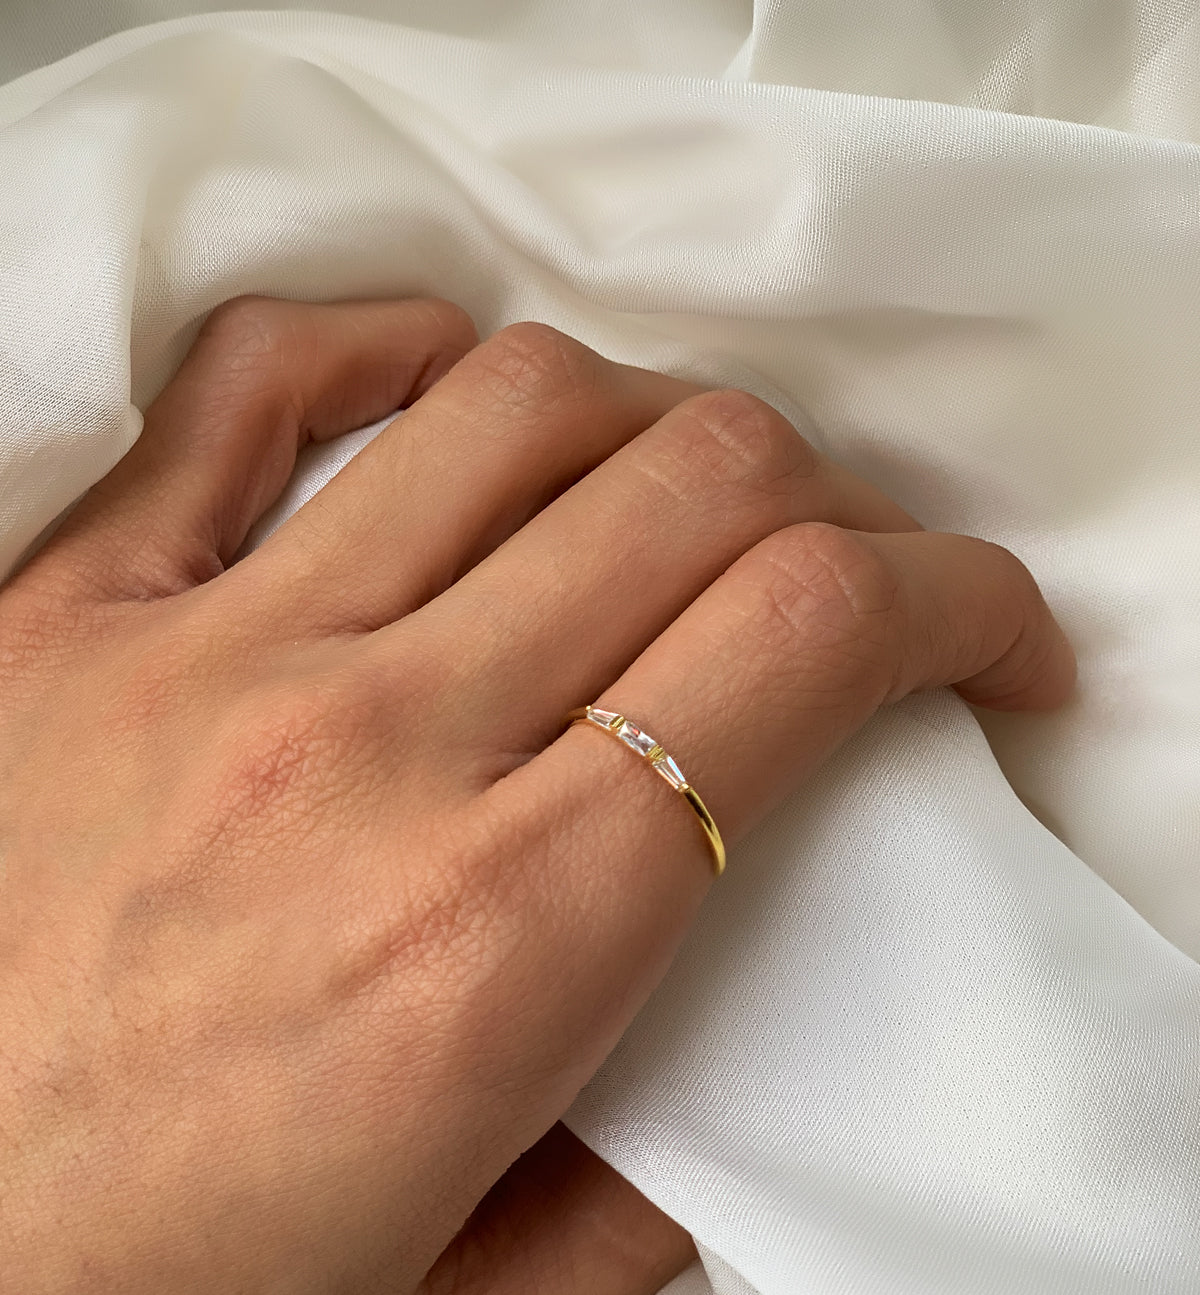 Simple and Dainty Gold Baguette Ring worn on Index Finger